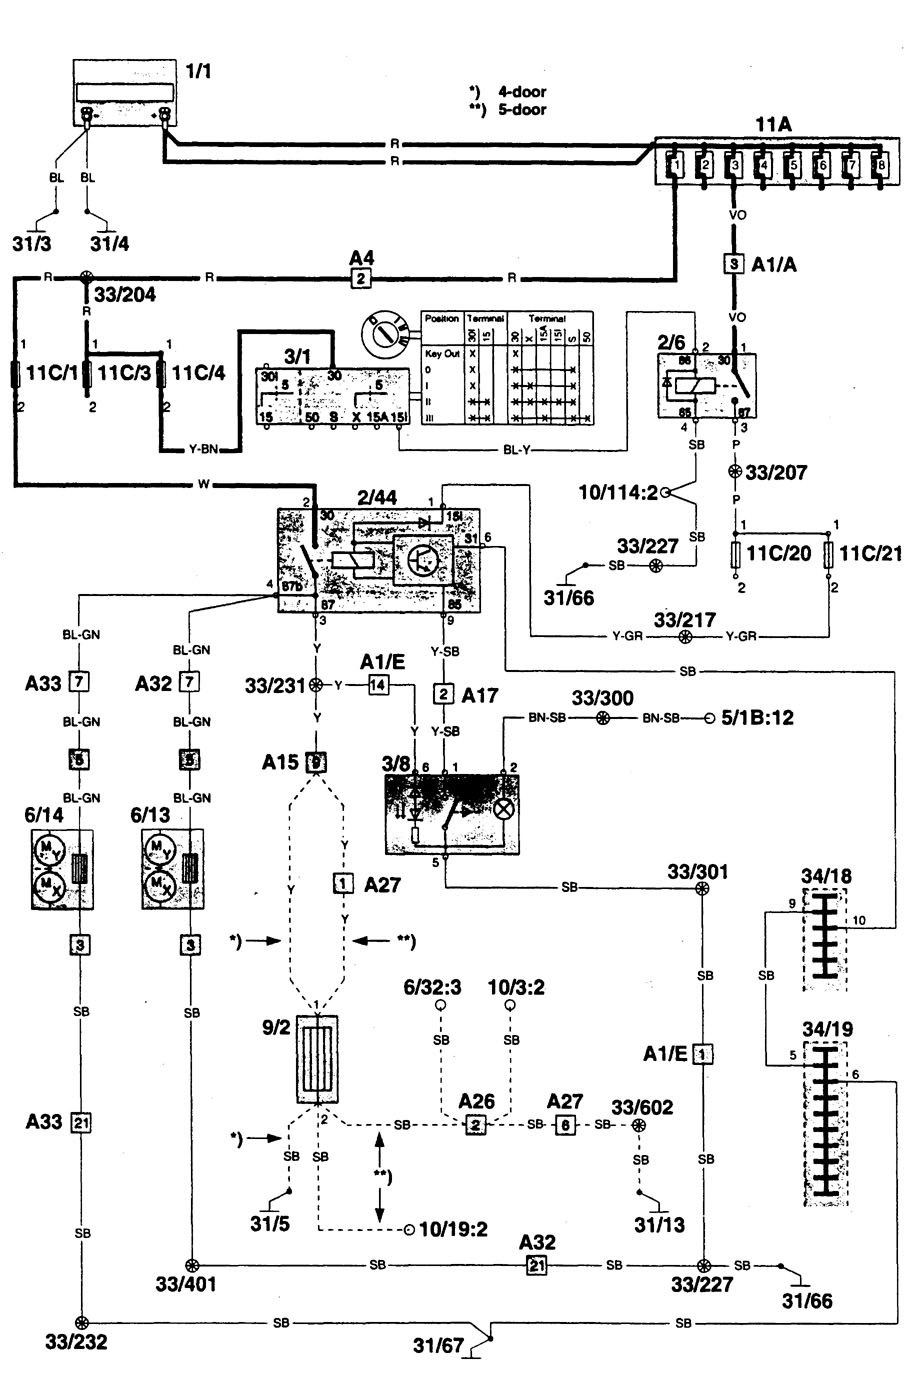 Heated Mirror Wiring Diagram Bots Truck Mirrors Volvo 960 1996 Diagrams Carknowledge Chevy Power